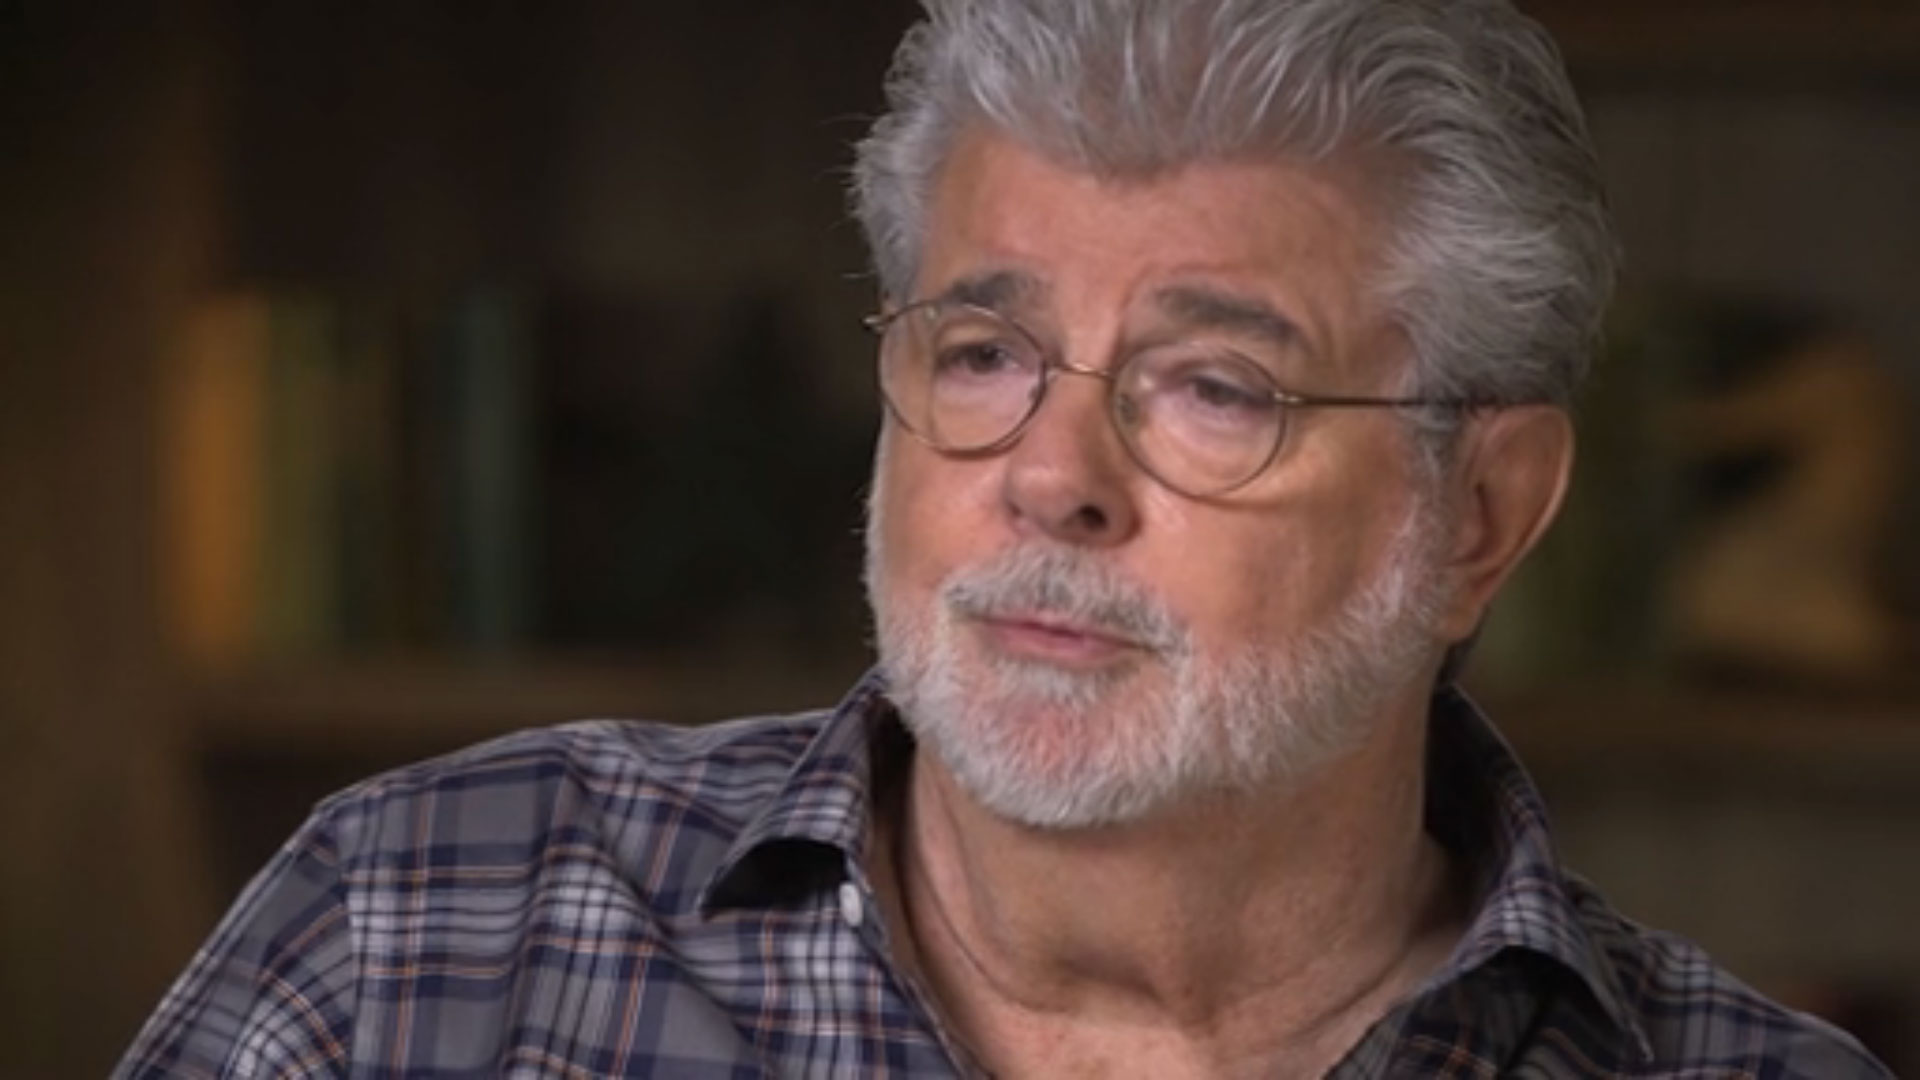 George Lucas says he sold the Star Wars franchise to 'white slavers' Disney